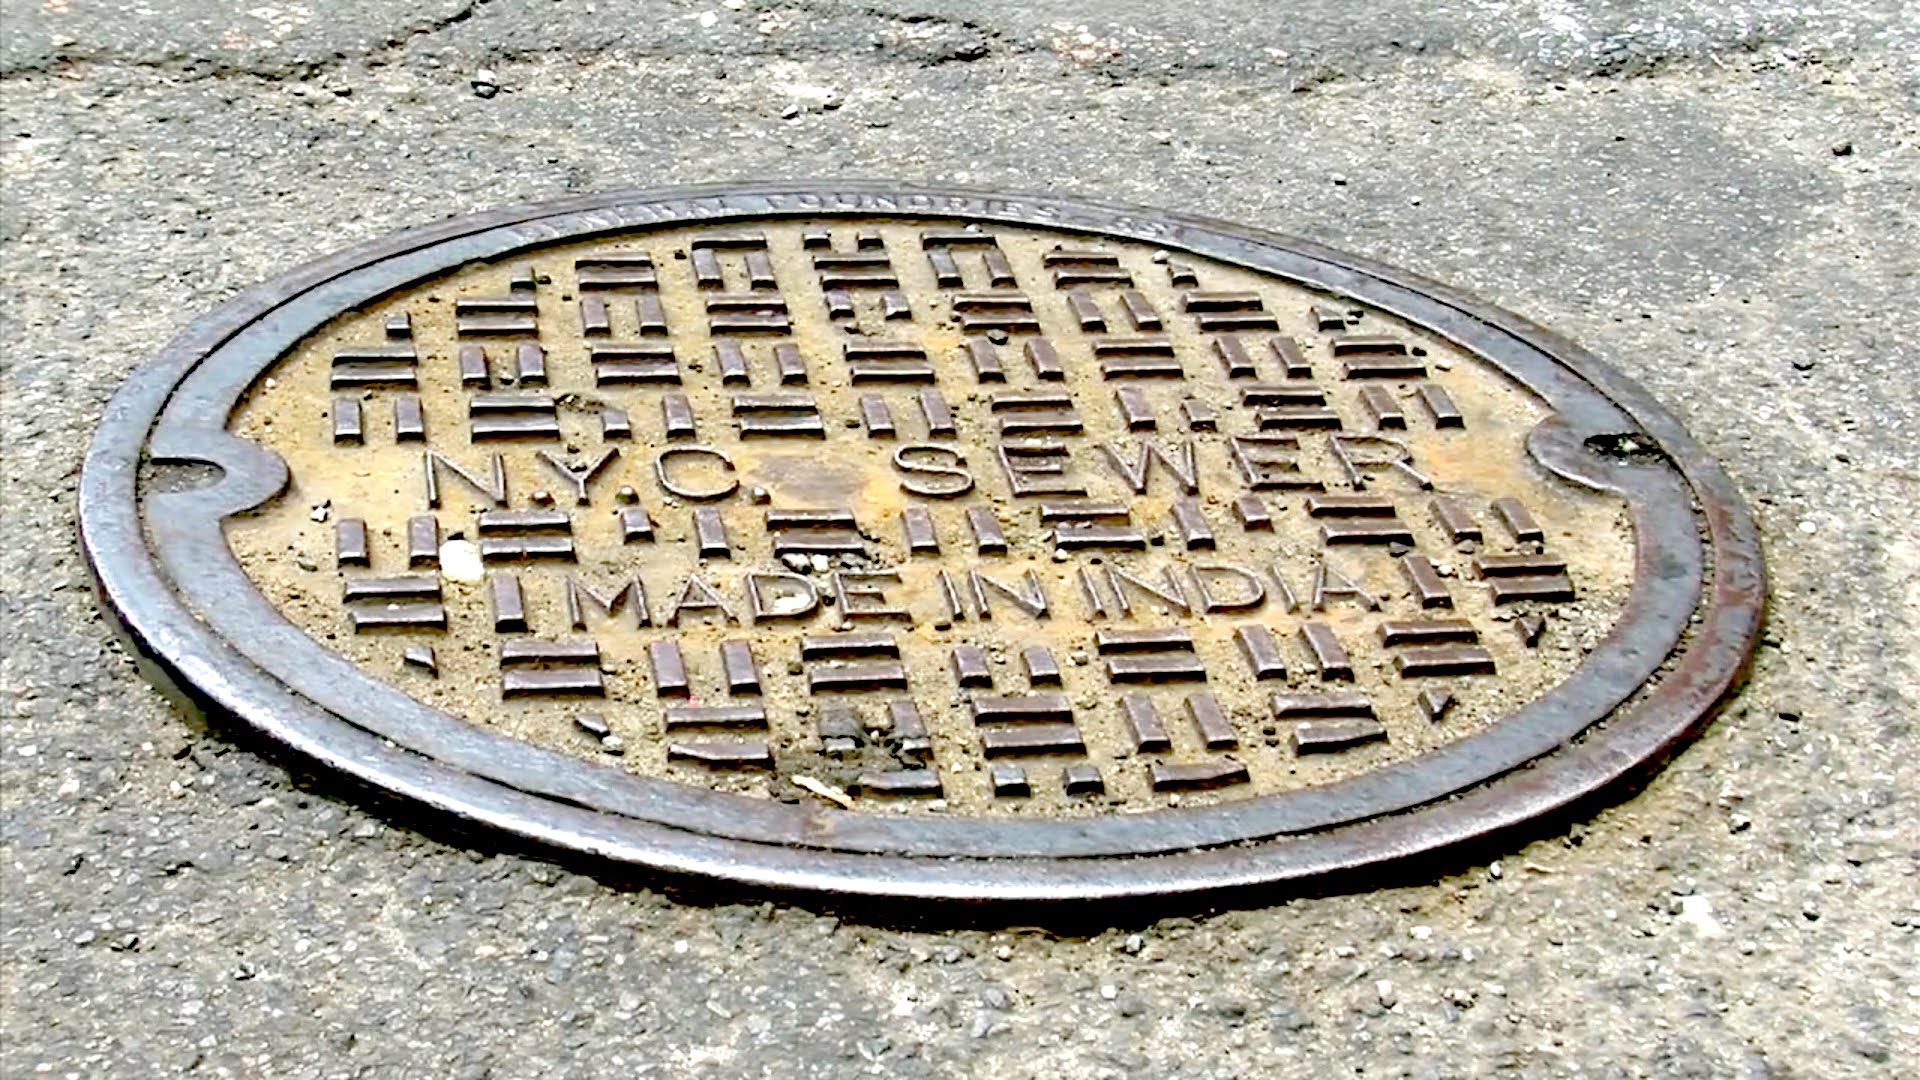 See Where NYC's Manhole Covers Come From